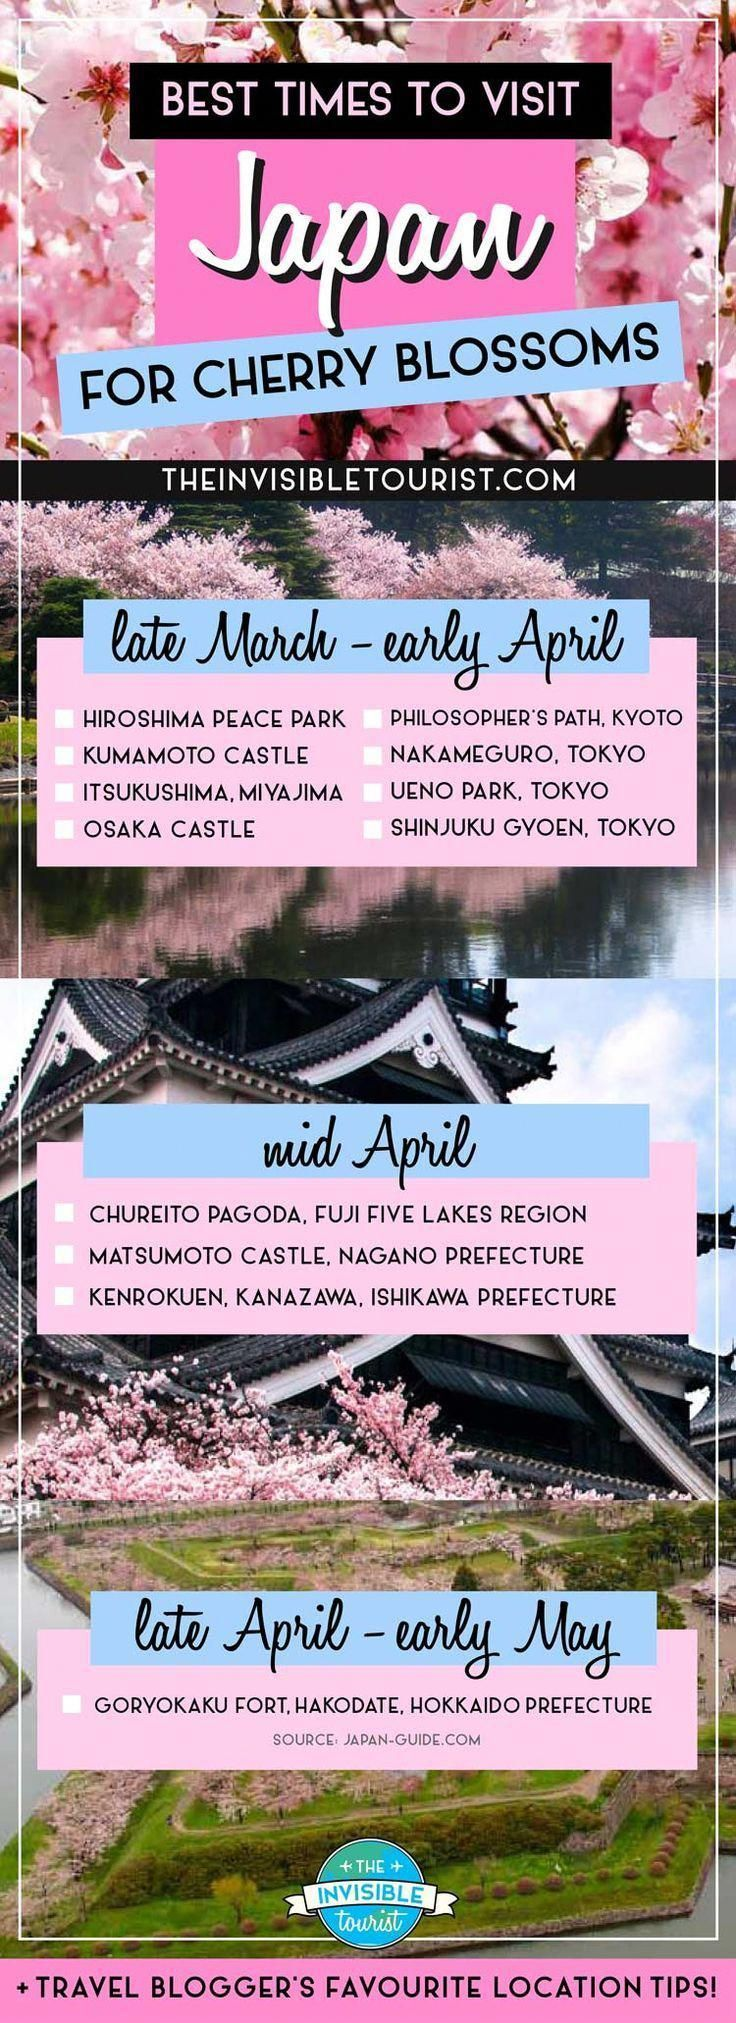 The Best Time to Visit Japan for Cherry Blossoms | The Invisible Tourist #japan #cherryblossoms #japantrip #japanitinerary #japantravelkyoto